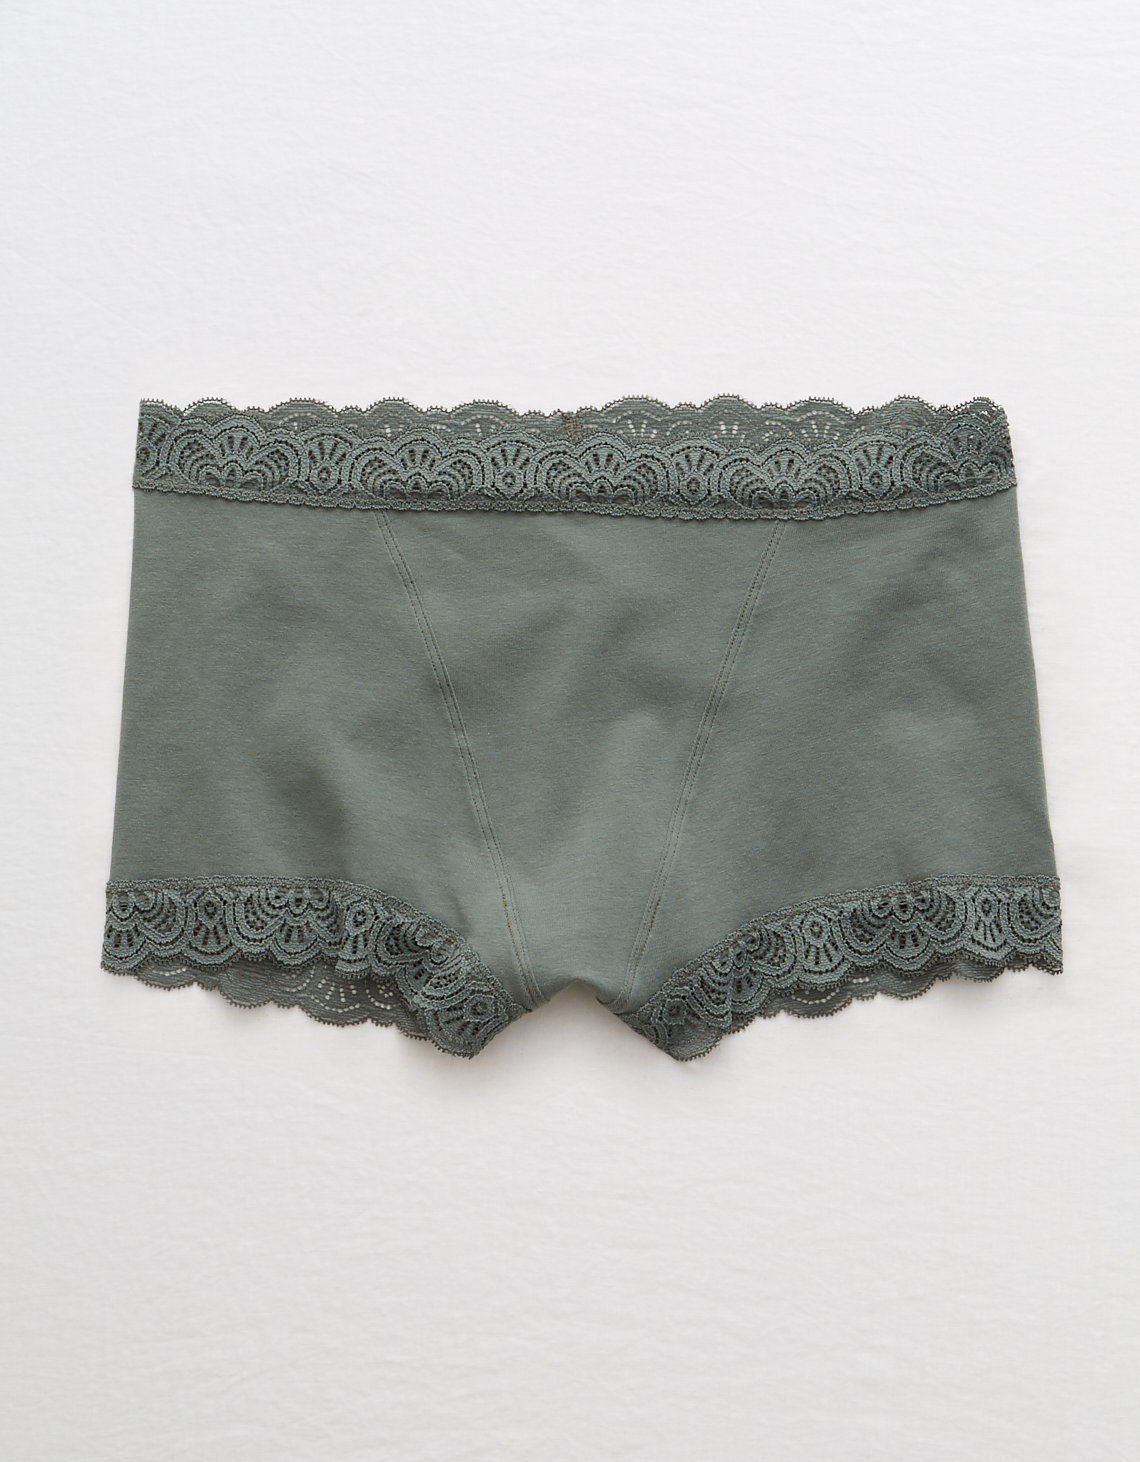 09a63f99d91f Aerie Cotton Mid Rise Boyshort Undie, Royal Palm | Aerie for ...